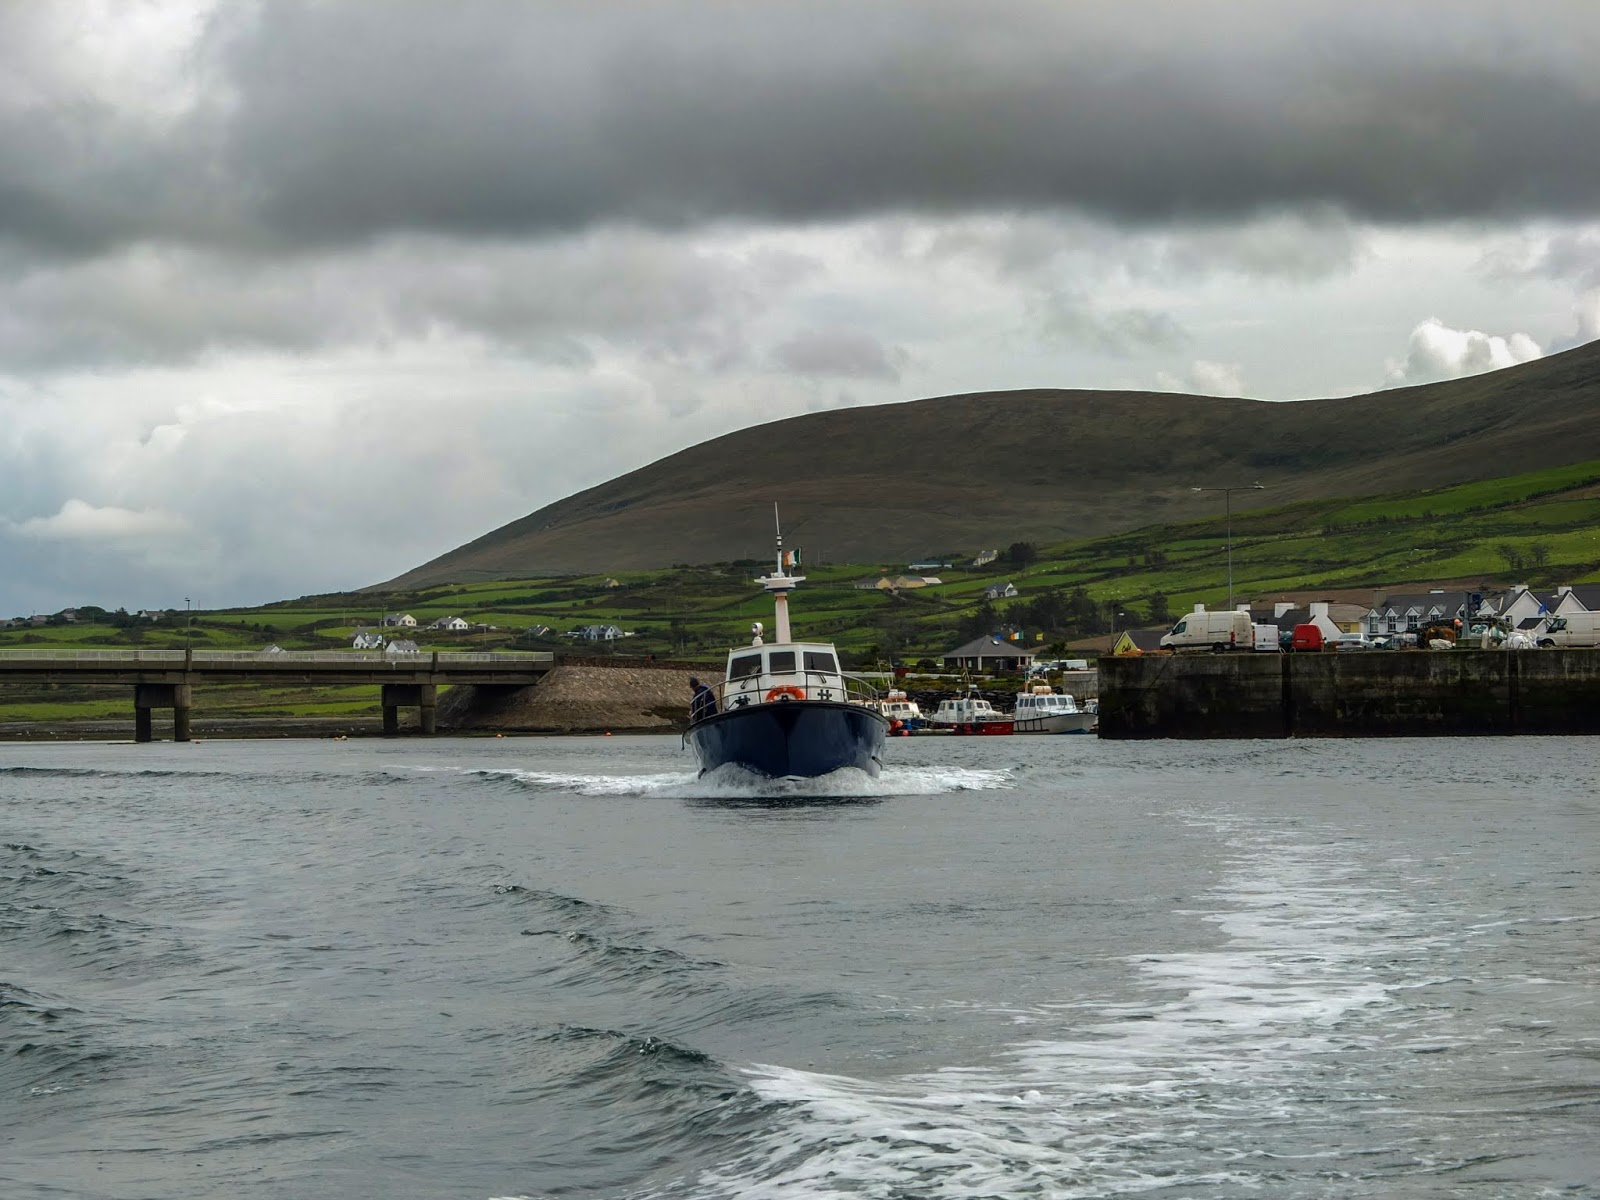 A blue and white boat leaving Portmagee Harbour in Co.Kerry.